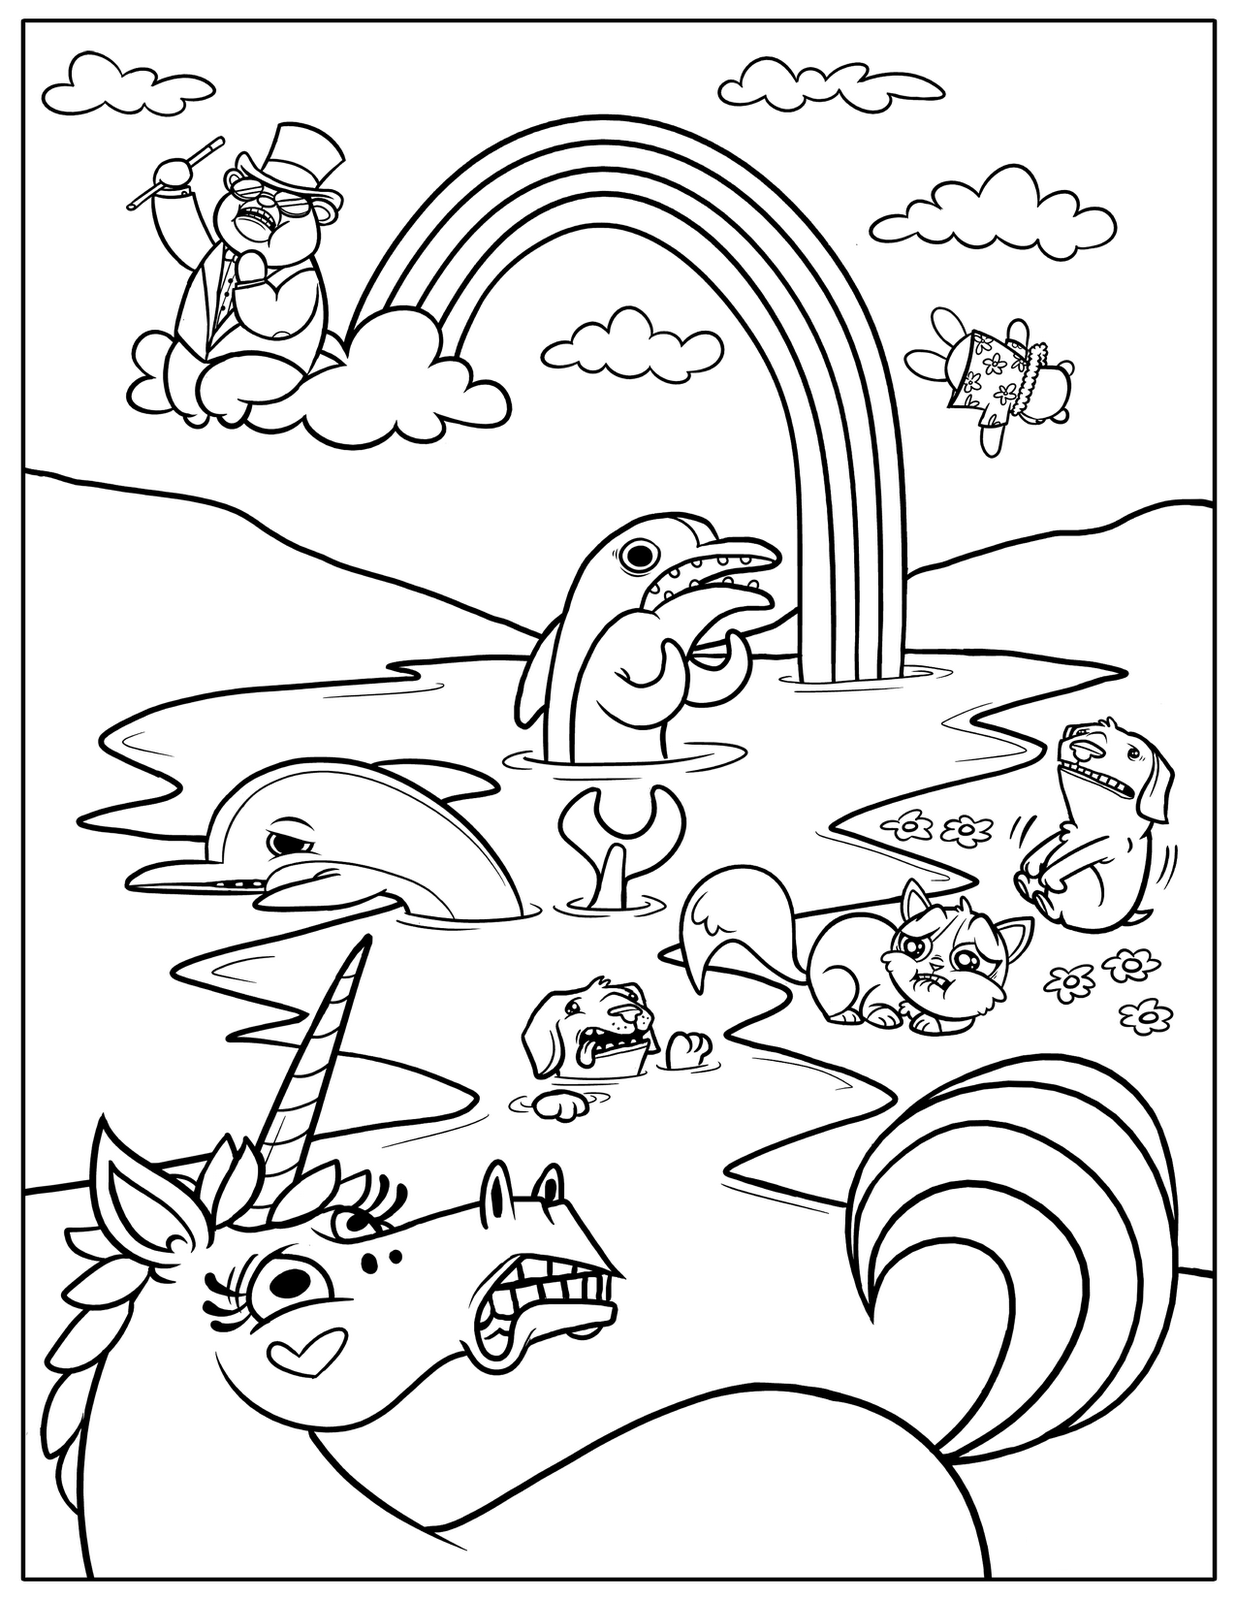 Toddler coloring pages printable free - Rainbow Coloring Pages Kids Printable